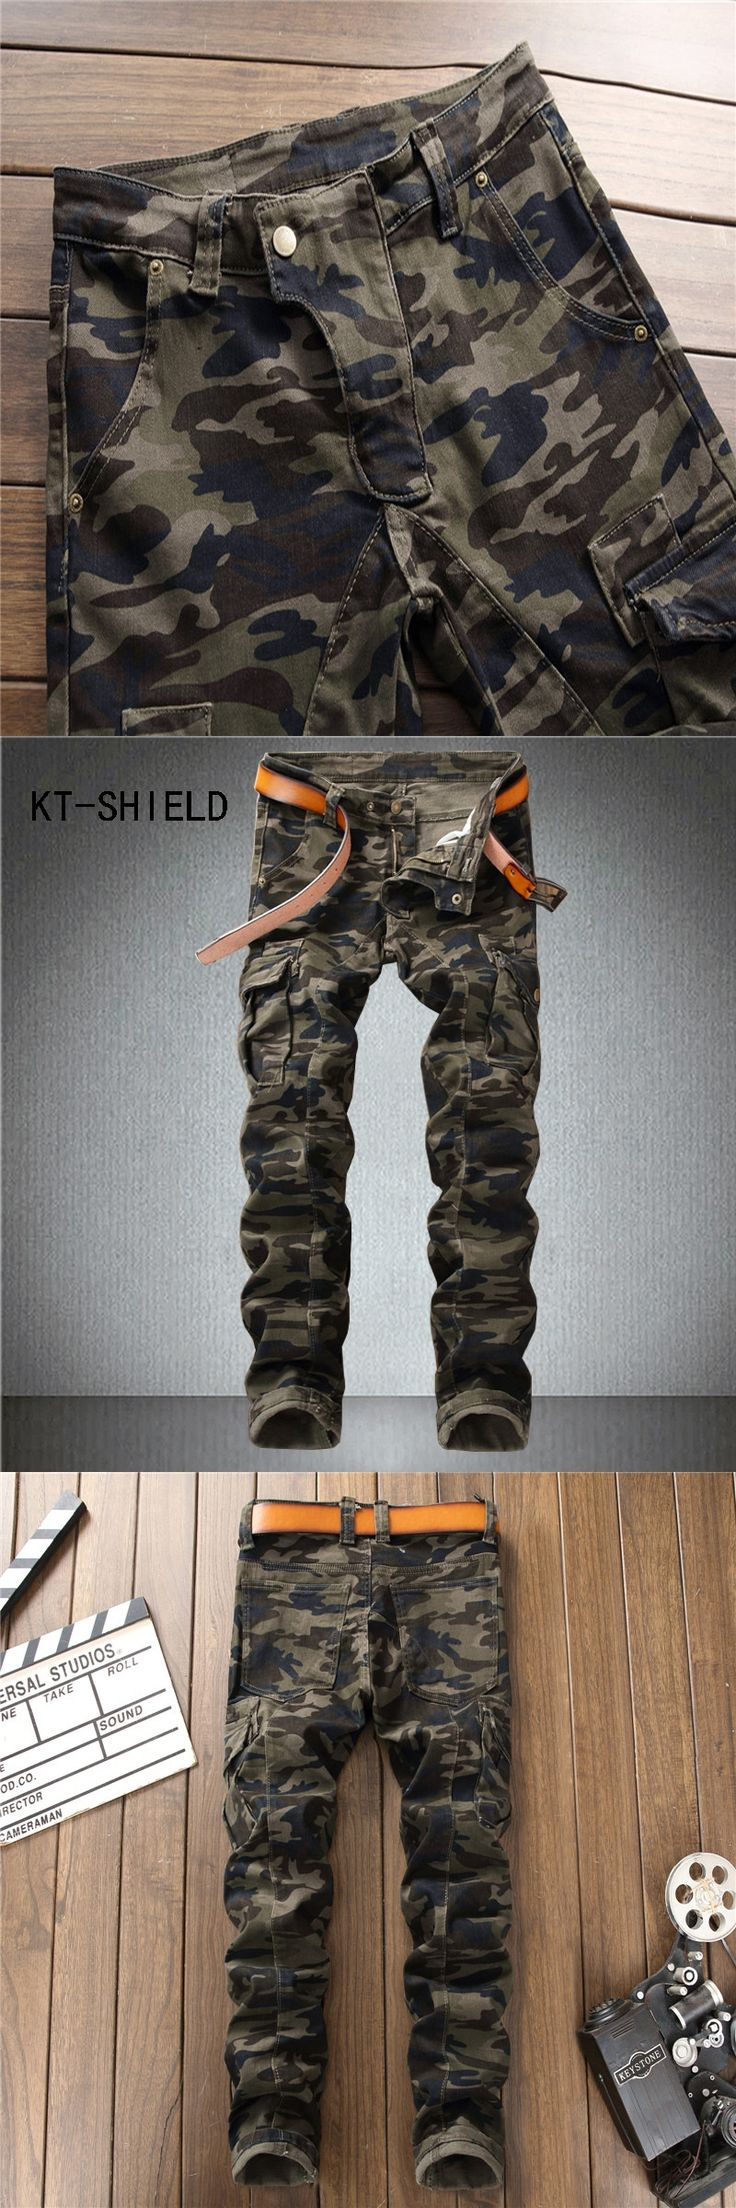 Mens Tactical cargo Pants hombre Multi Pocket casual homme trousers camouflage biker motorcycle Slim fit jeans calca masculina